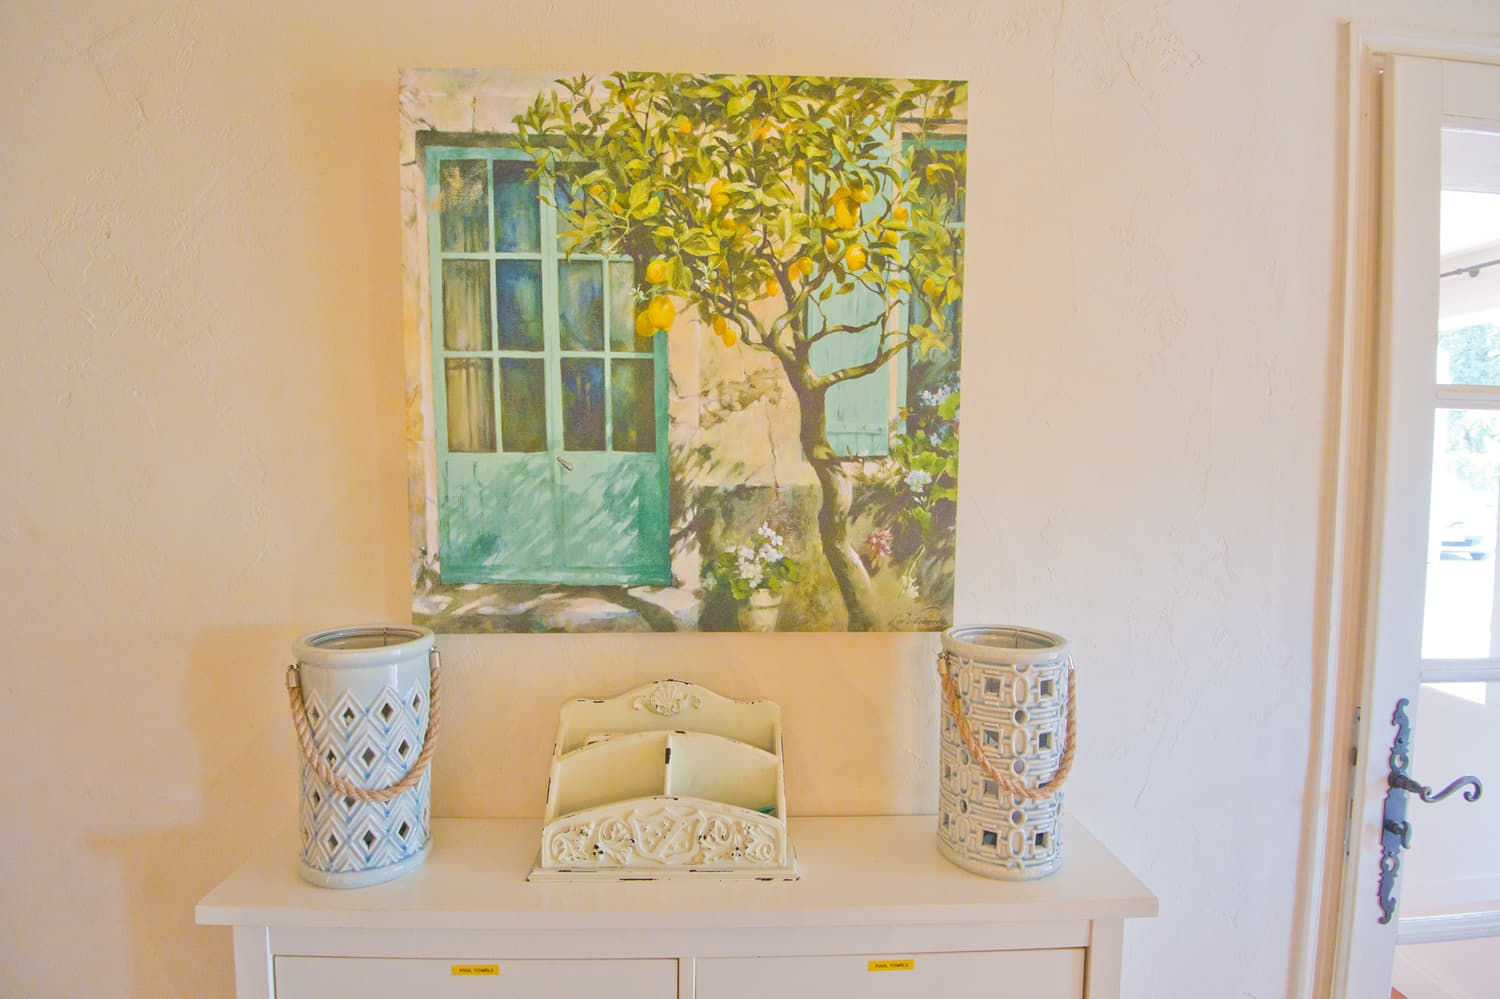 Provençal mural scene on wall in Provence rental home